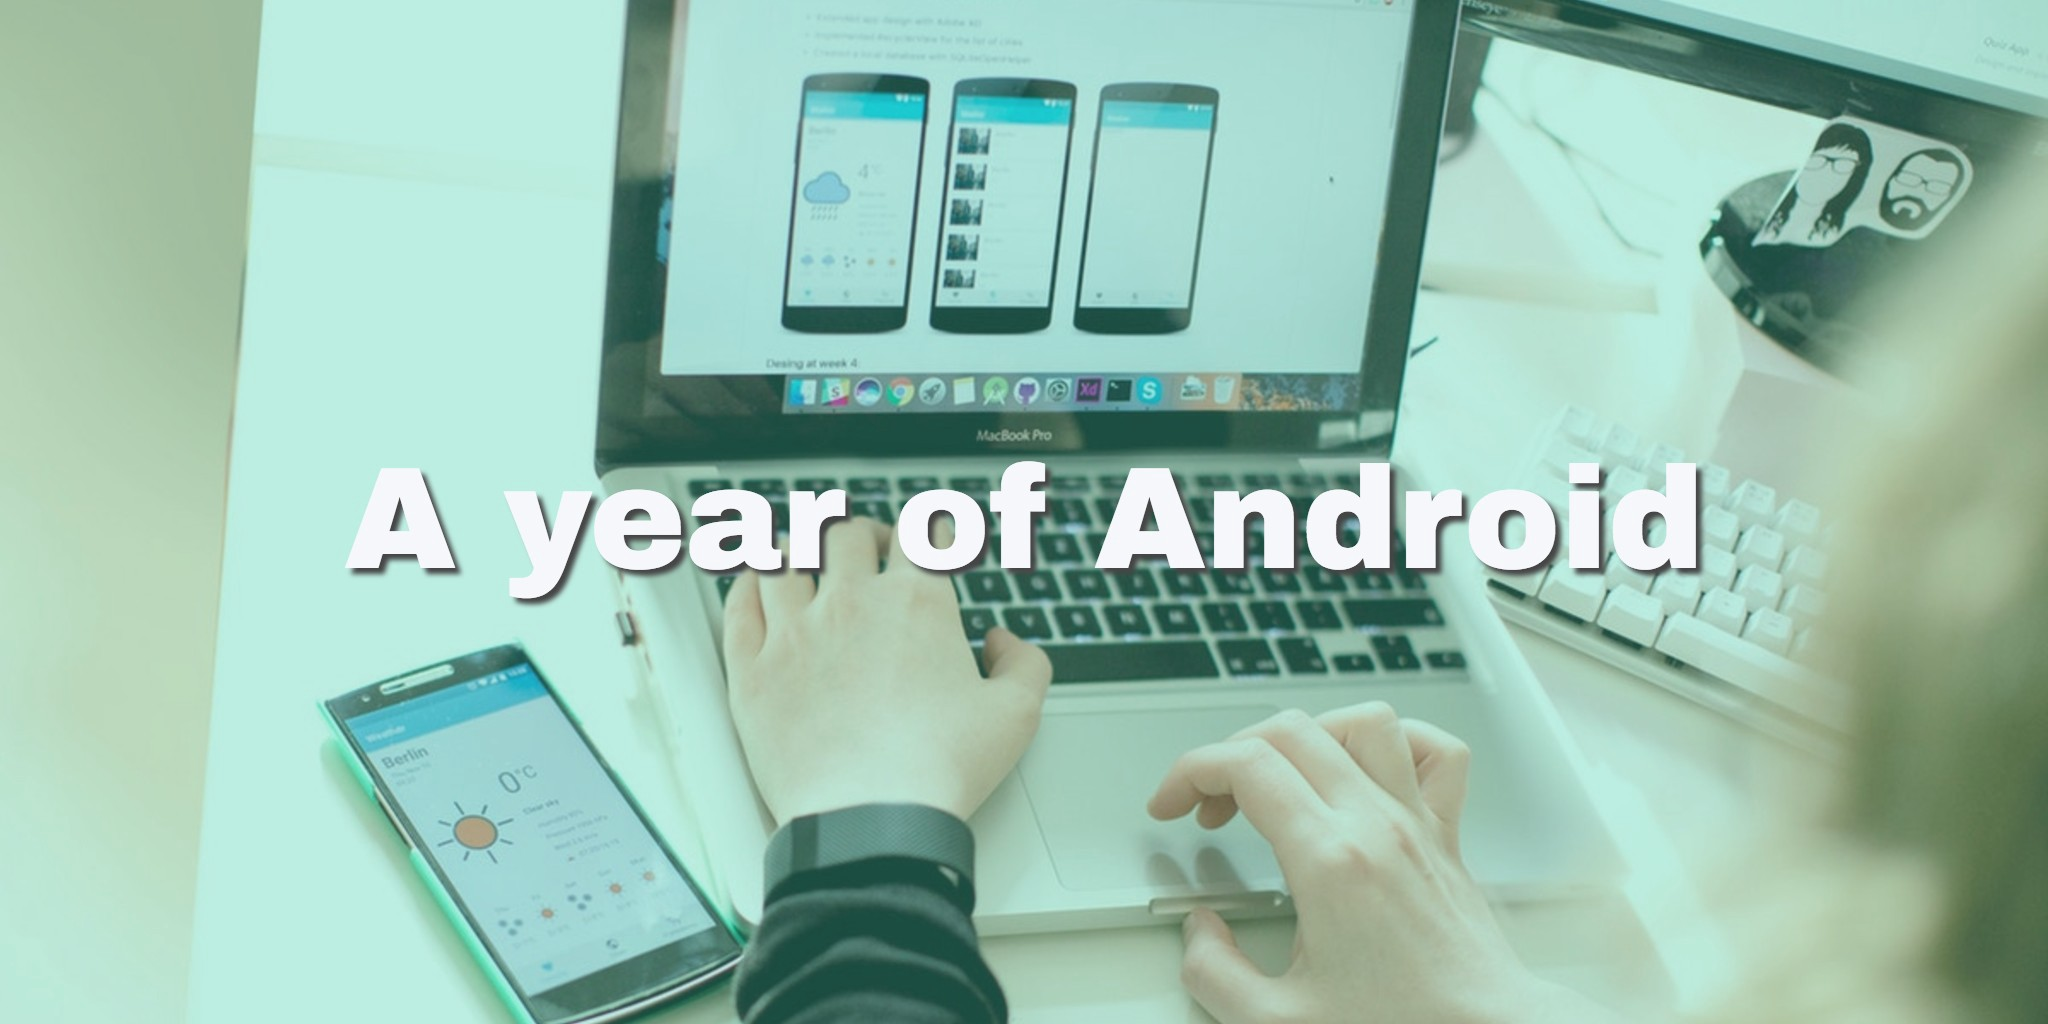 A year of Android - Udacity Inc - Medium